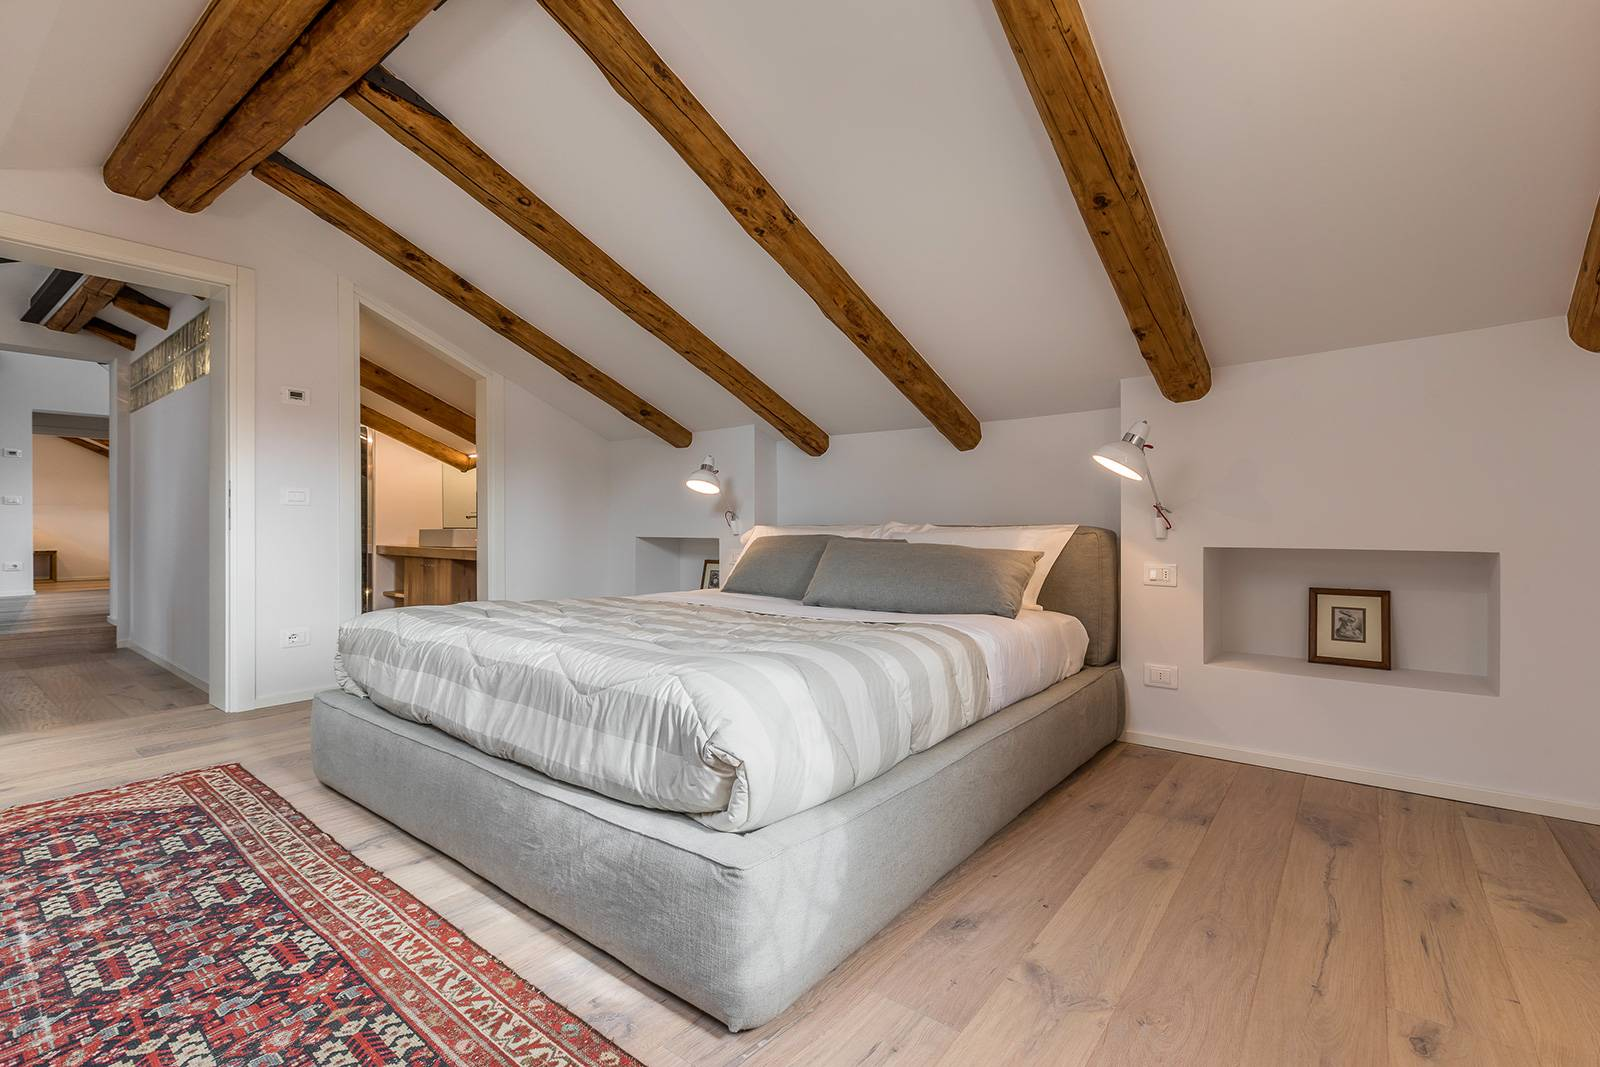 nice parquet flooring and wooden beams confer warmth to the ambience